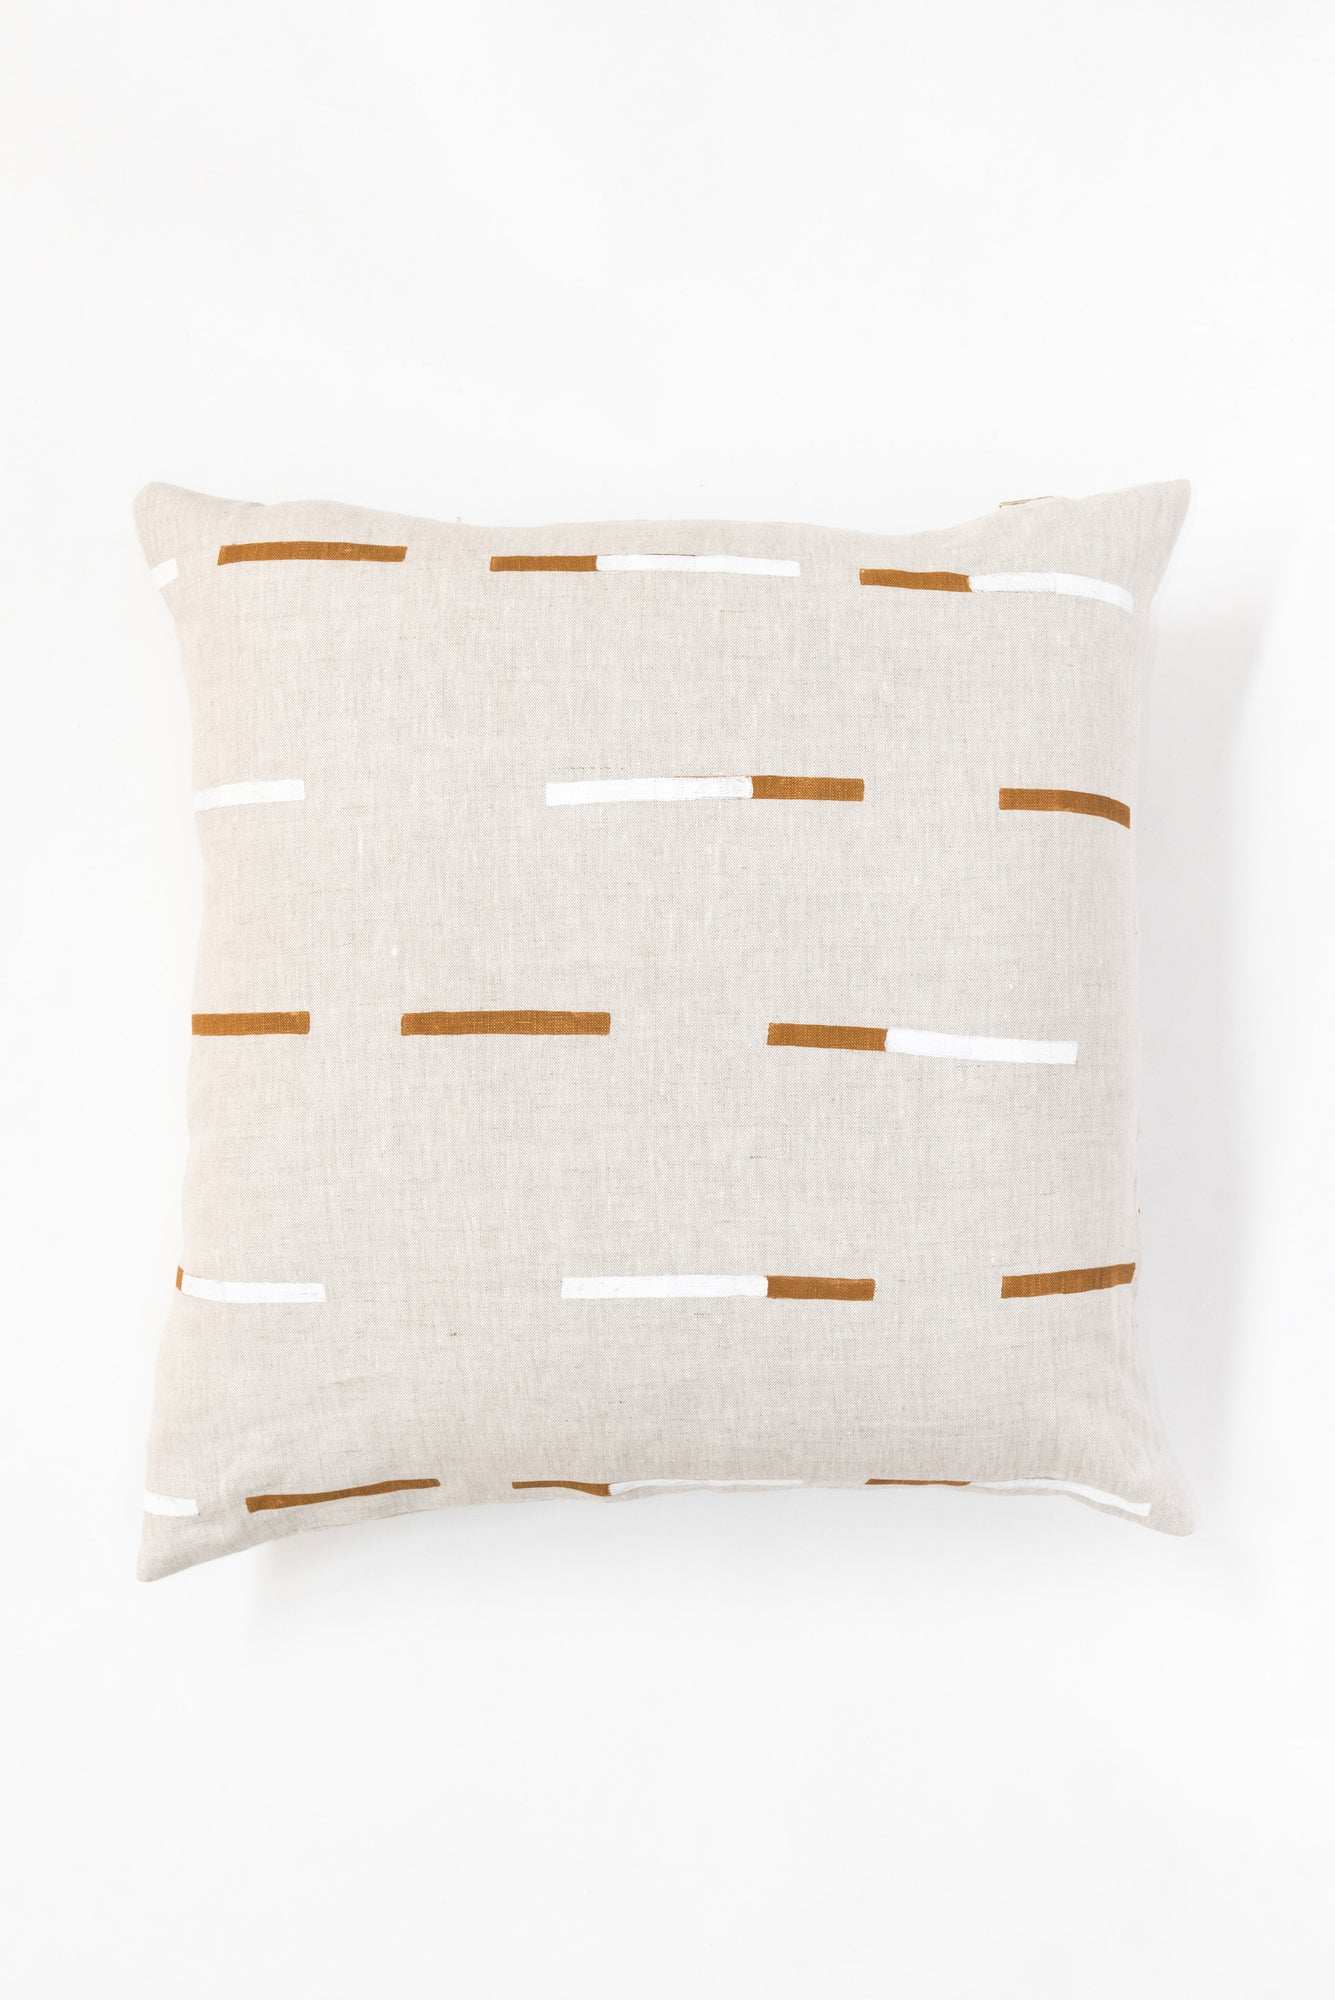 Overlapping Dashes Pillow